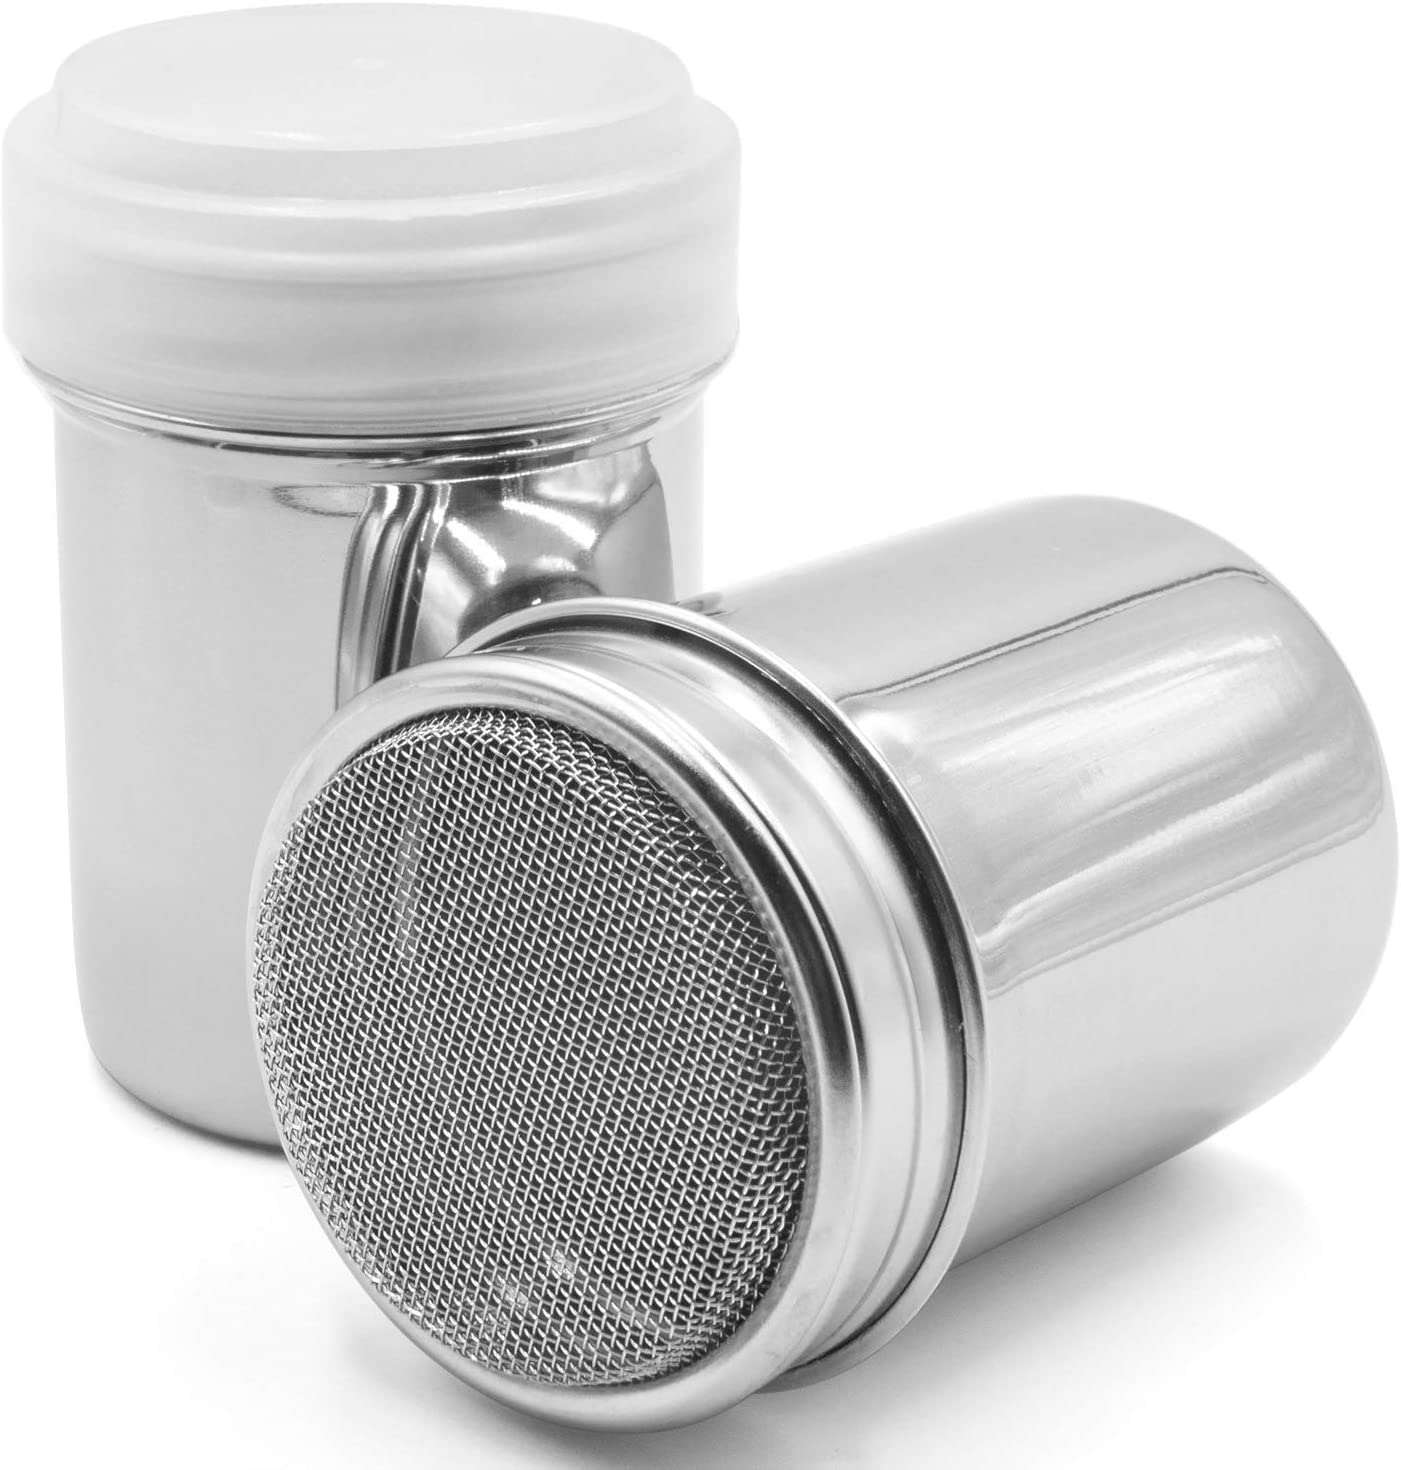 AnFun 2 Pack Powder Sugar Shaker with Lid Cinnamon Icing Cans Co